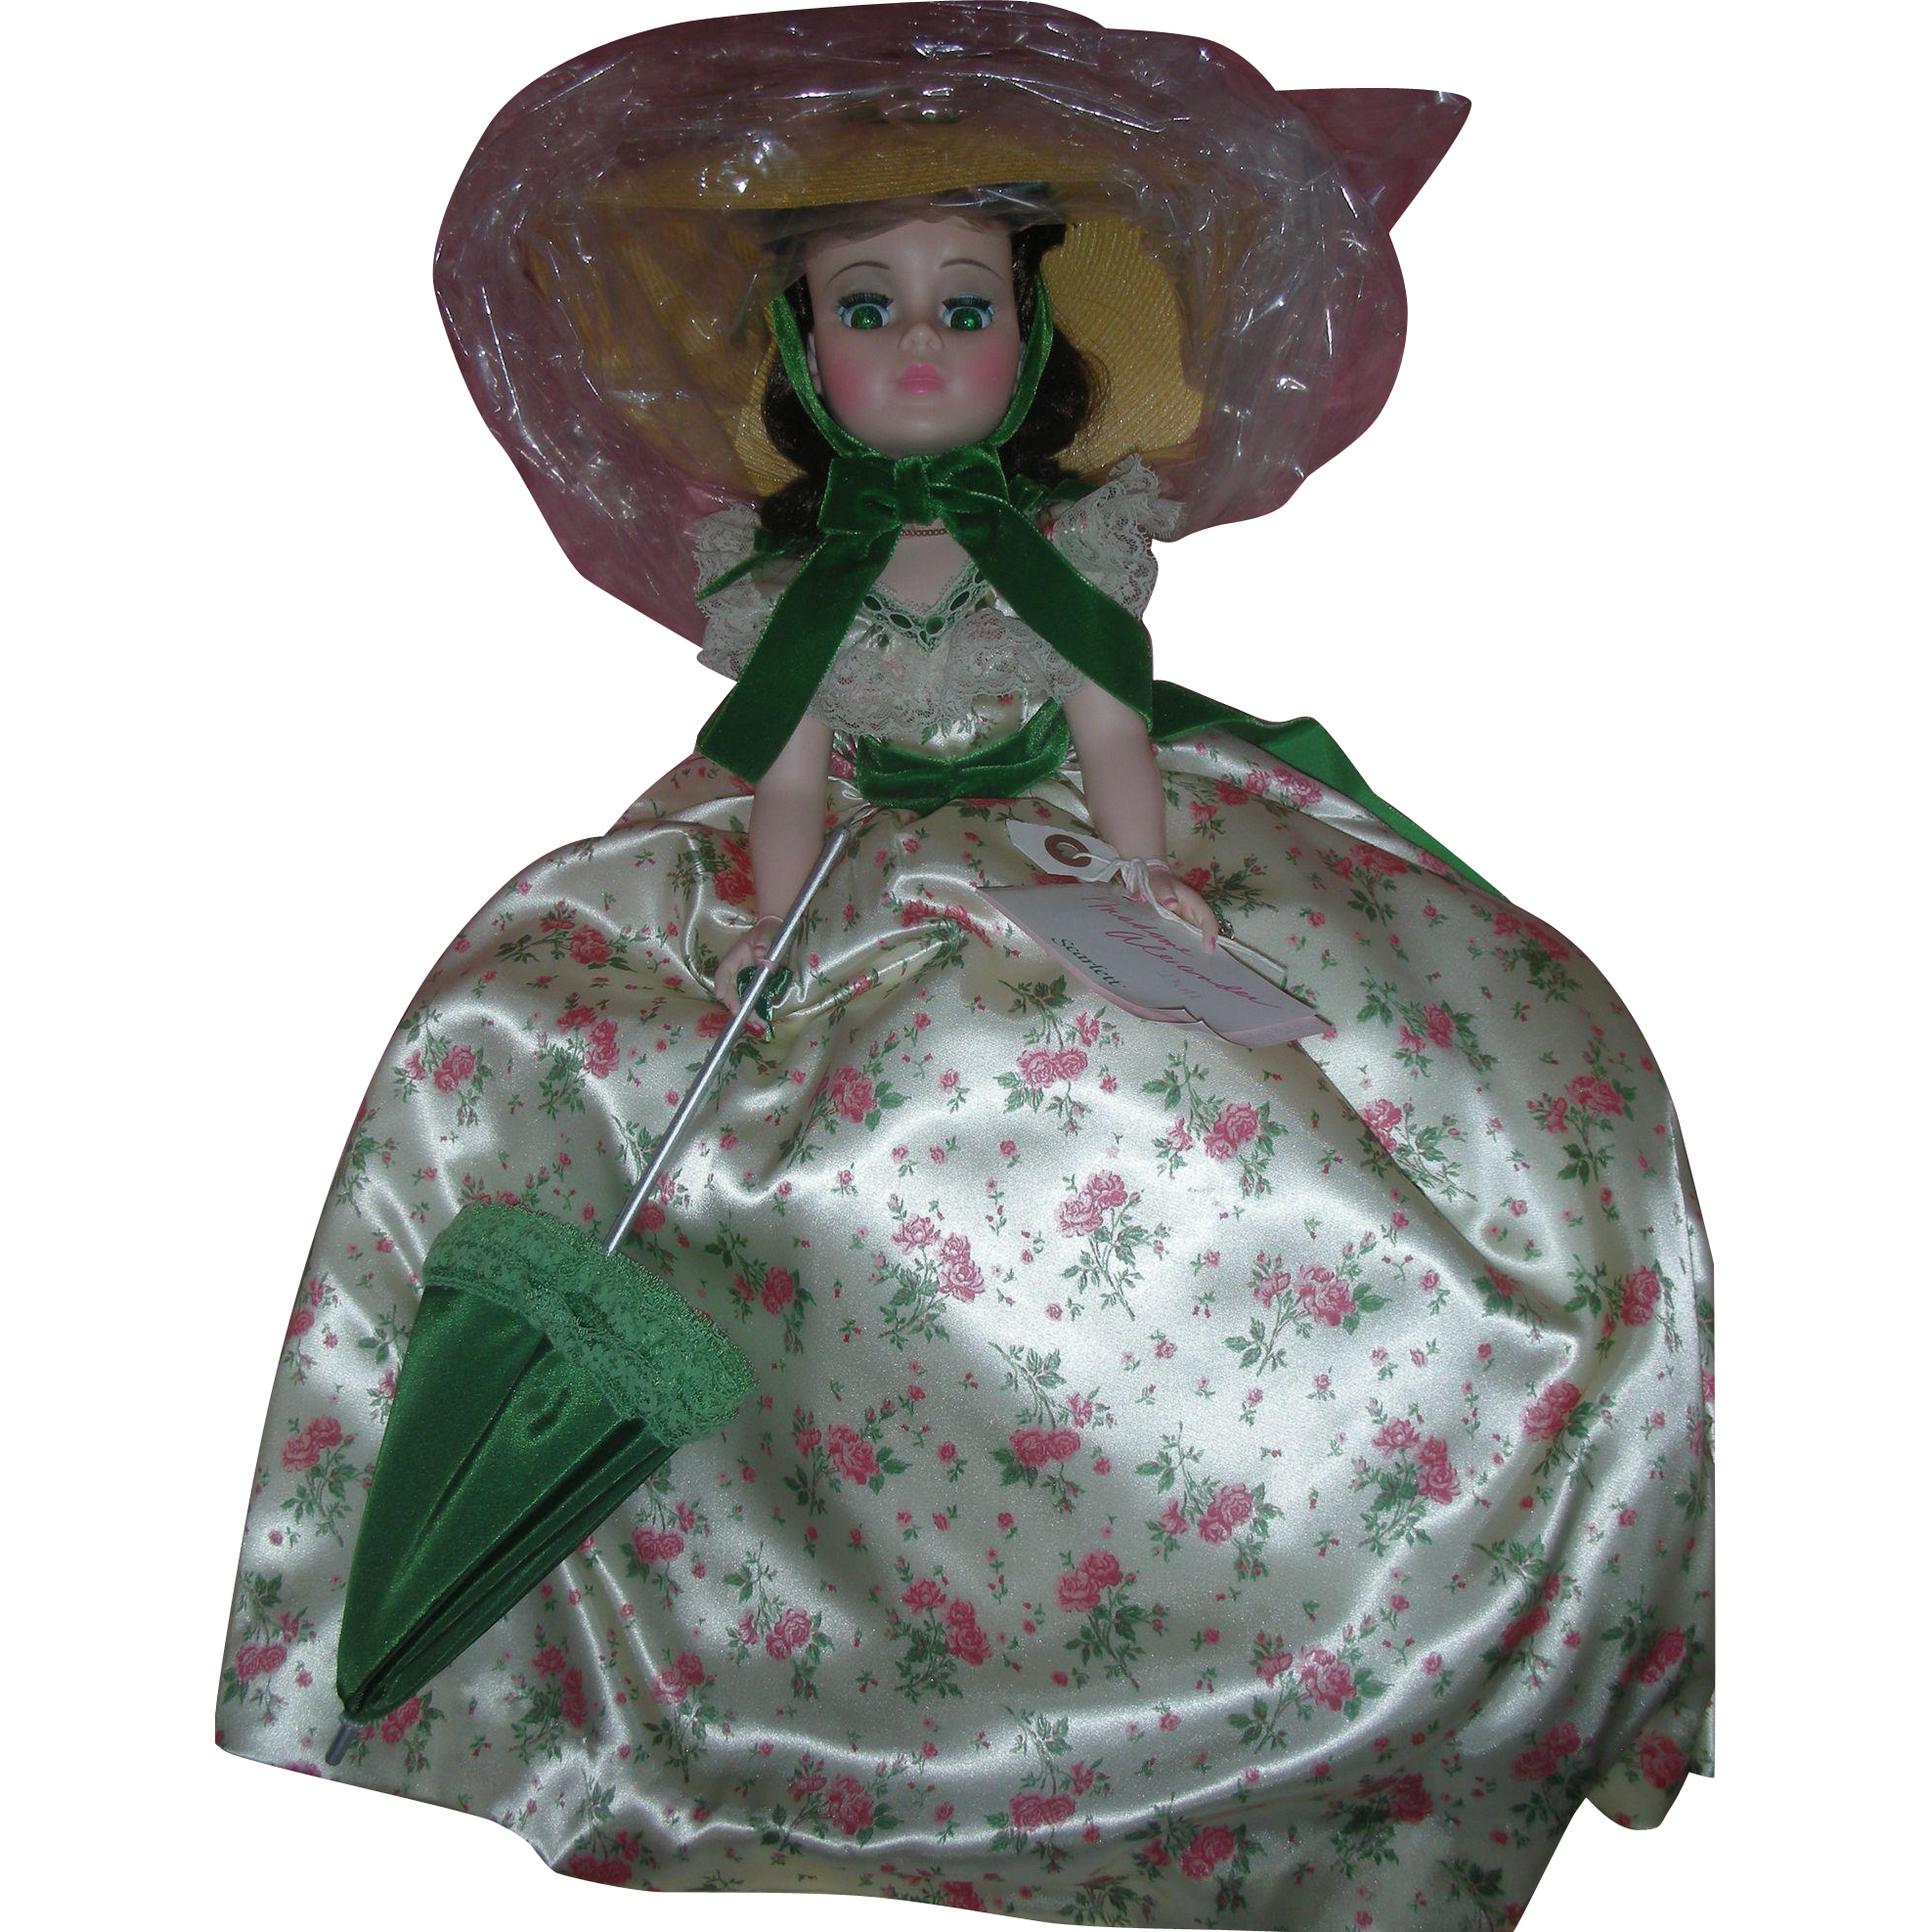 Madame Alexander Portrait Scarlett O'Hara Doll GWTW 21 Inch #2255 Picnic Dress Mint in Box Fashion Doll